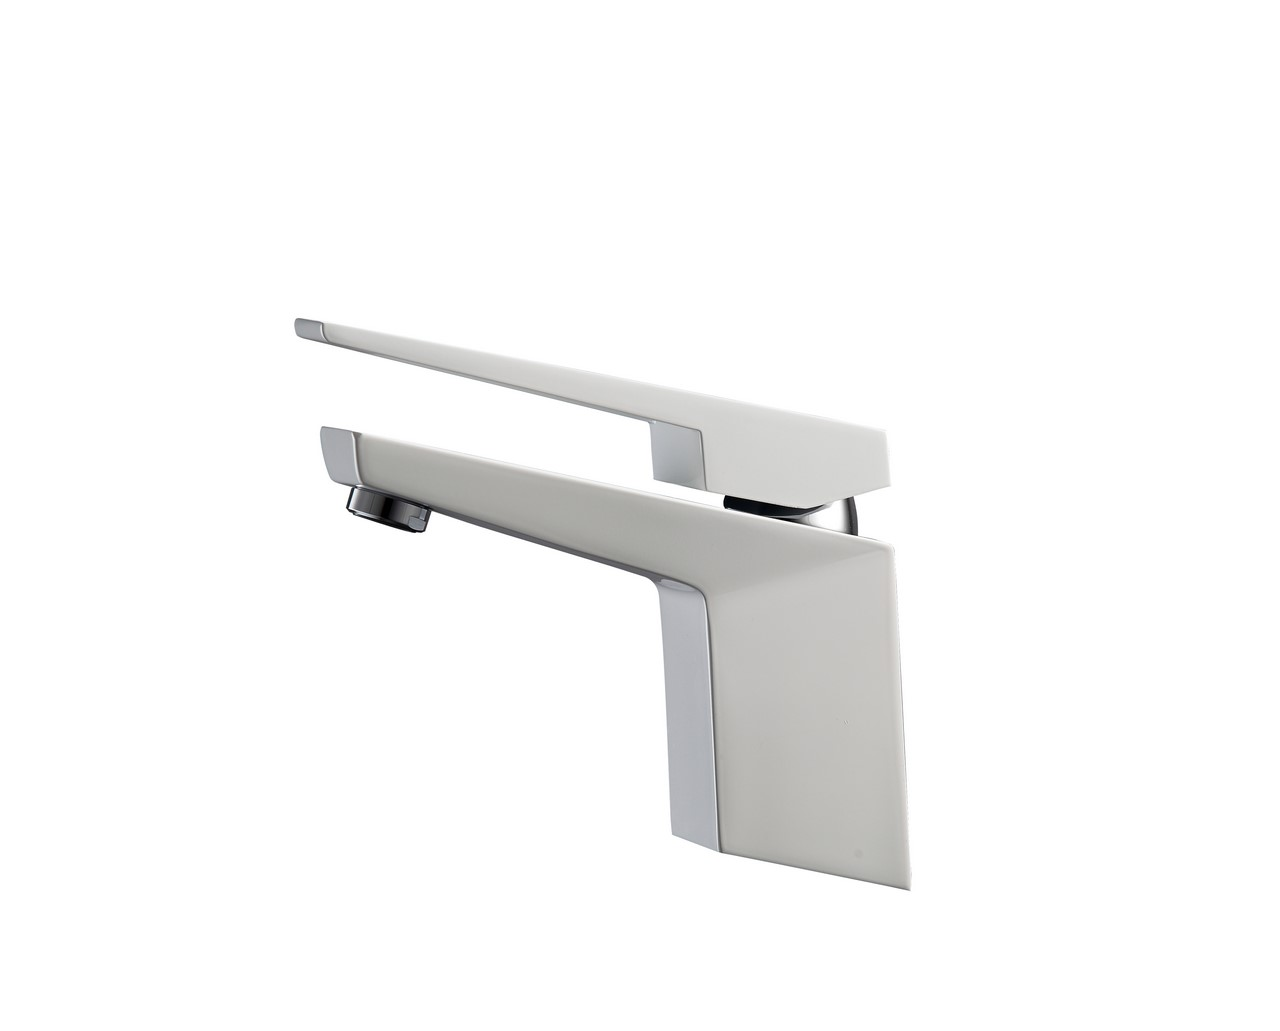 chrome faucet faucets white brcw bath f polished productdetailzoom centerset product sq brea control single